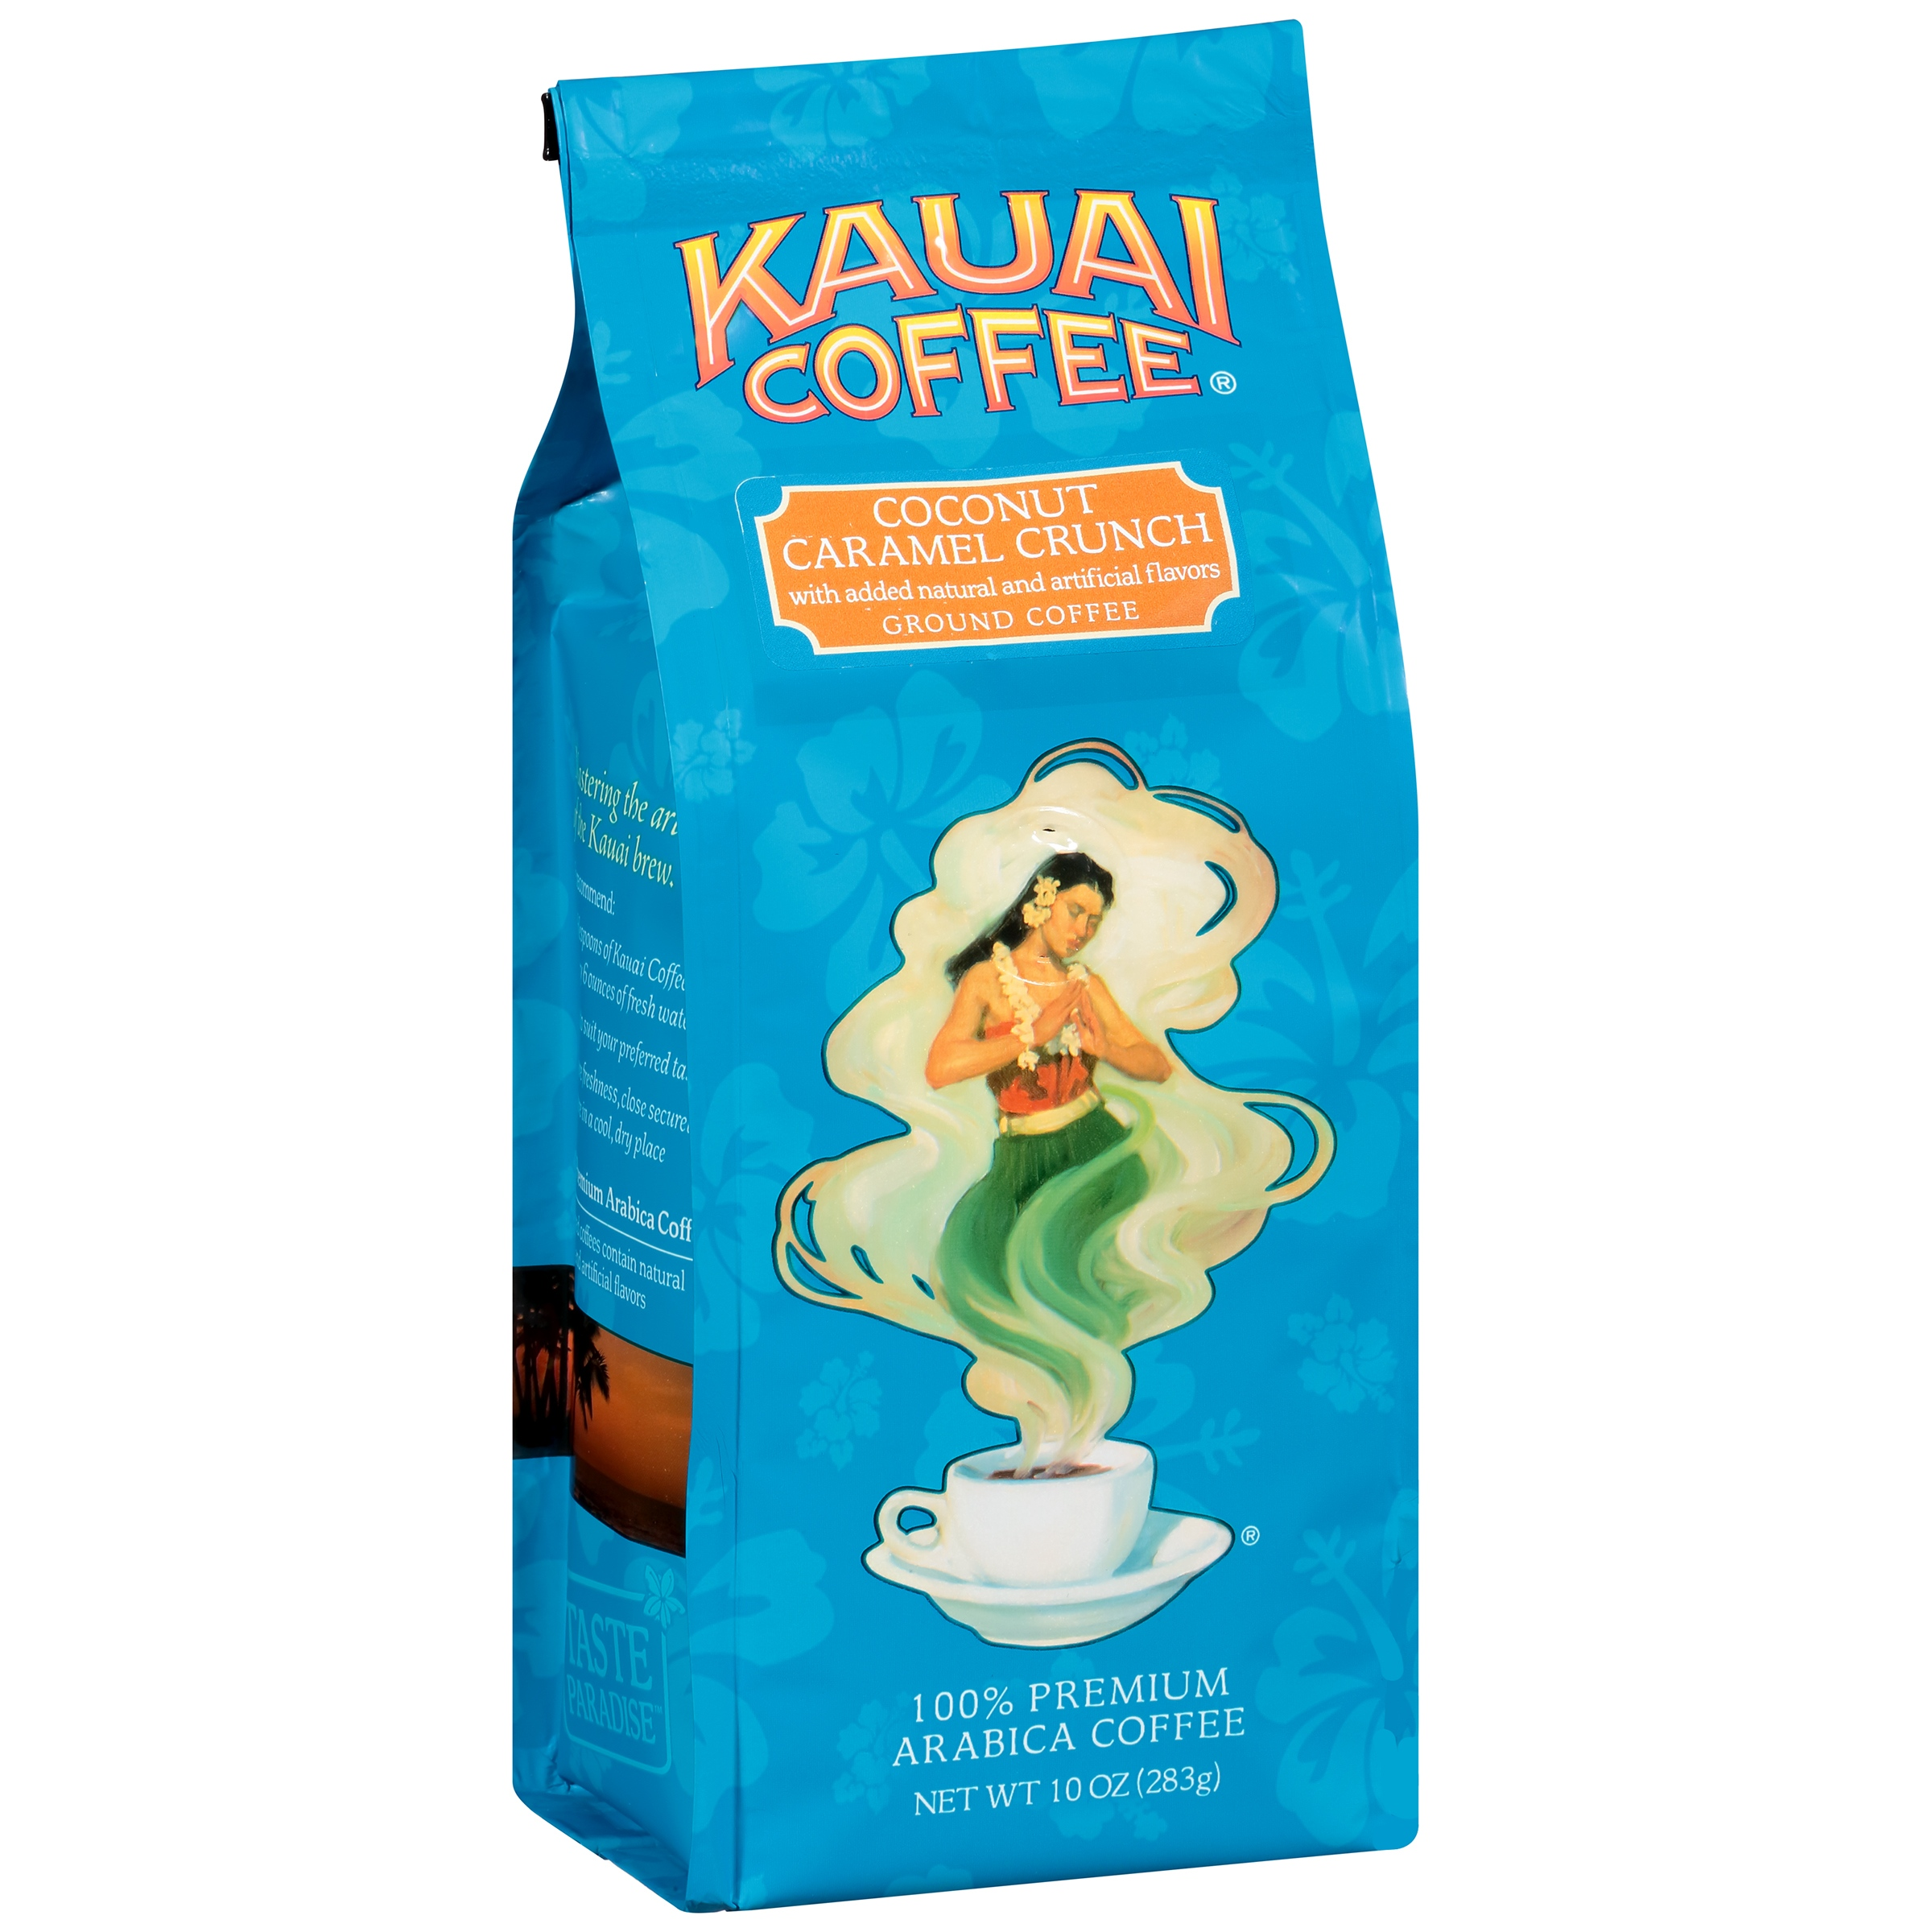 Kauai Coffee® Coconut Caramel Crunch Ground Hawaiian Coffee 10 oz. Bag